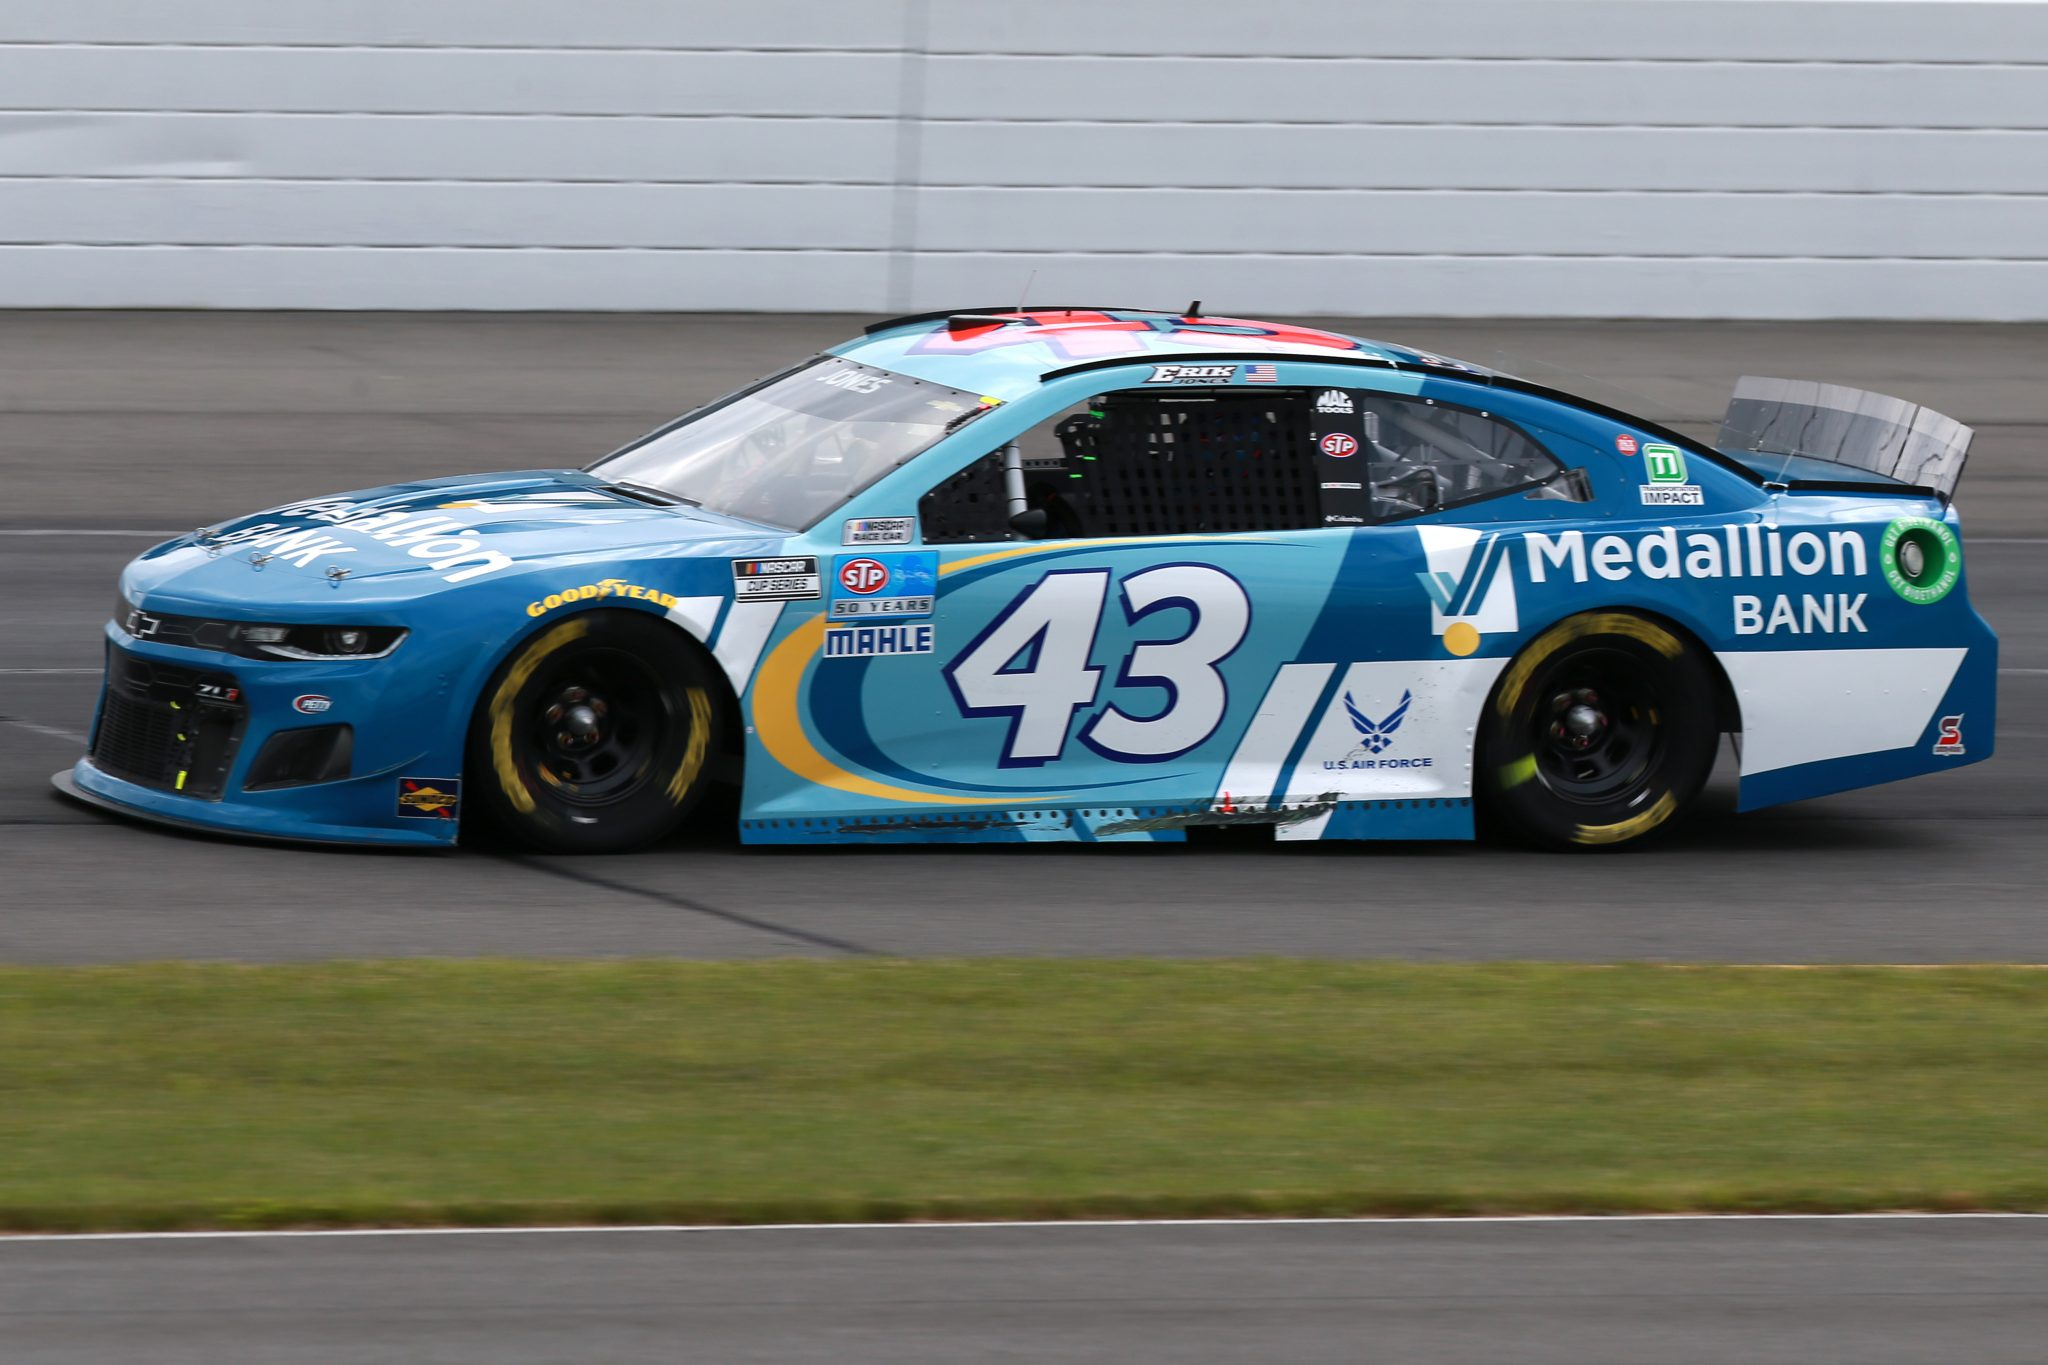 LONG POND, PENNSYLVANIA - JUNE 26: Erik Jones, driver of the #43 Medallion Bank Chevrolet, drives during the NASCAR Cup Series Pocono Organics CBD 325 at Pocono Raceway on June 26, 2021 in Long Pond, Pennsylvania. (Photo by Sean Gardner/Getty Images) | Getty Images